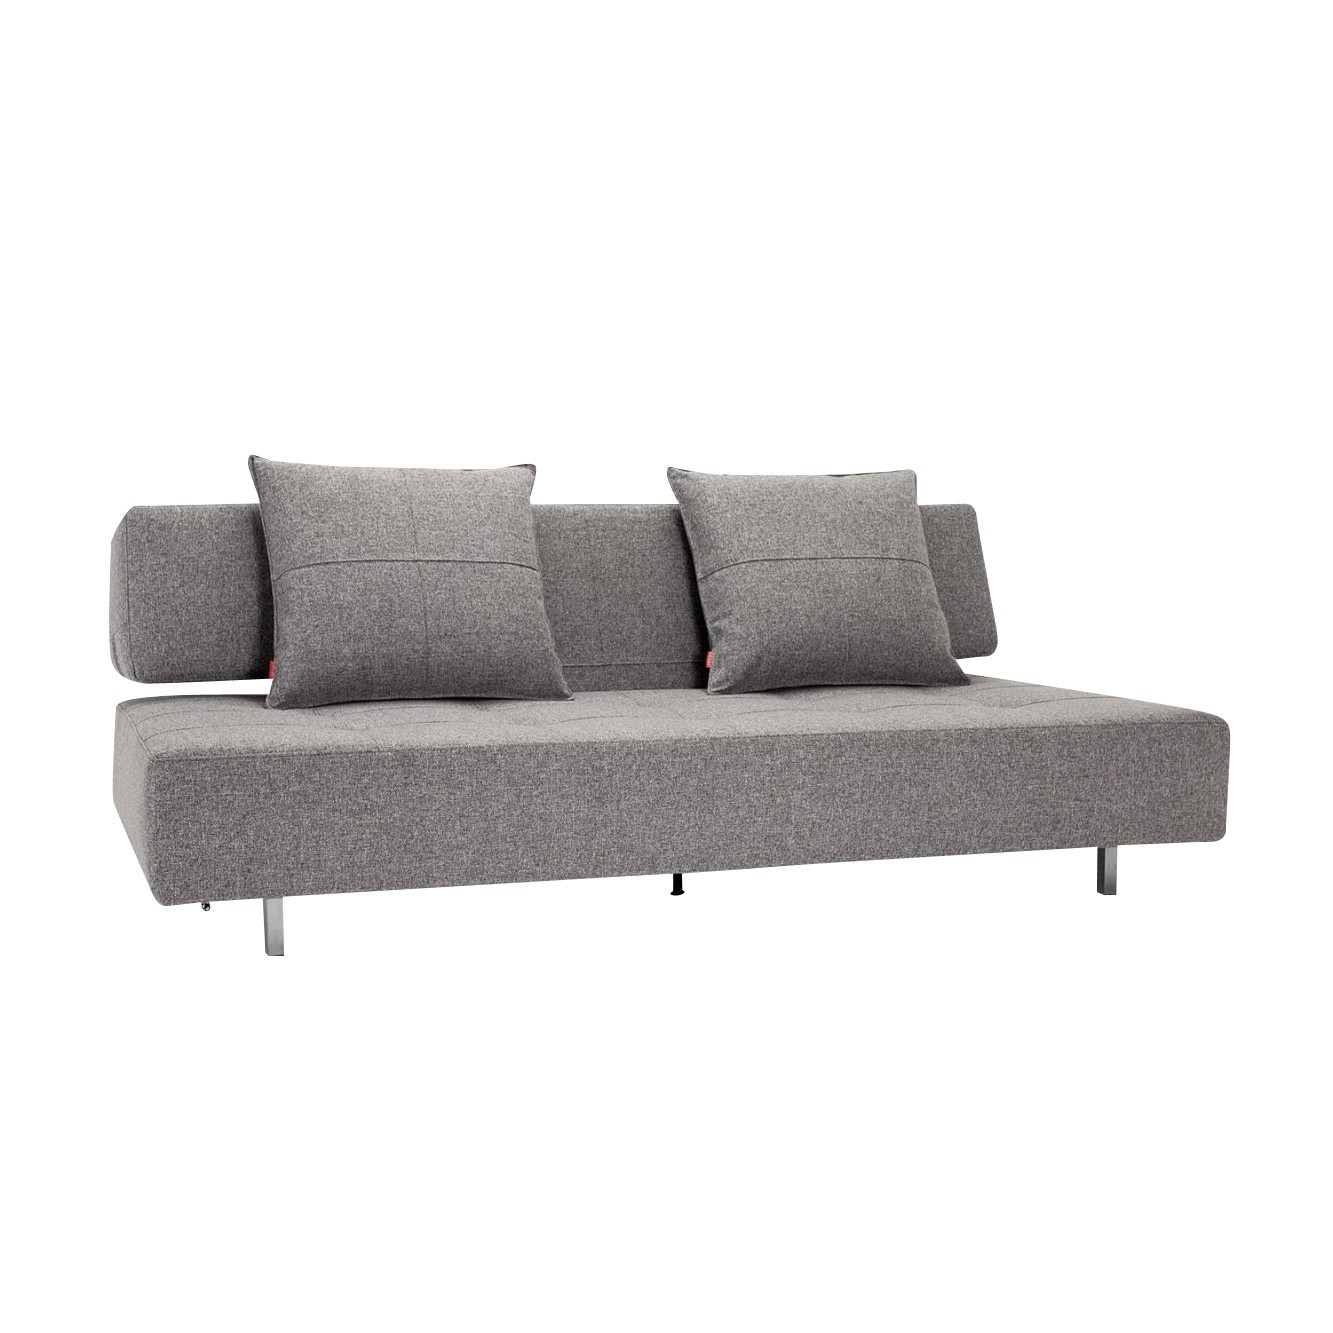 Innovation Sessel Innovative Sofas Jerusalem House